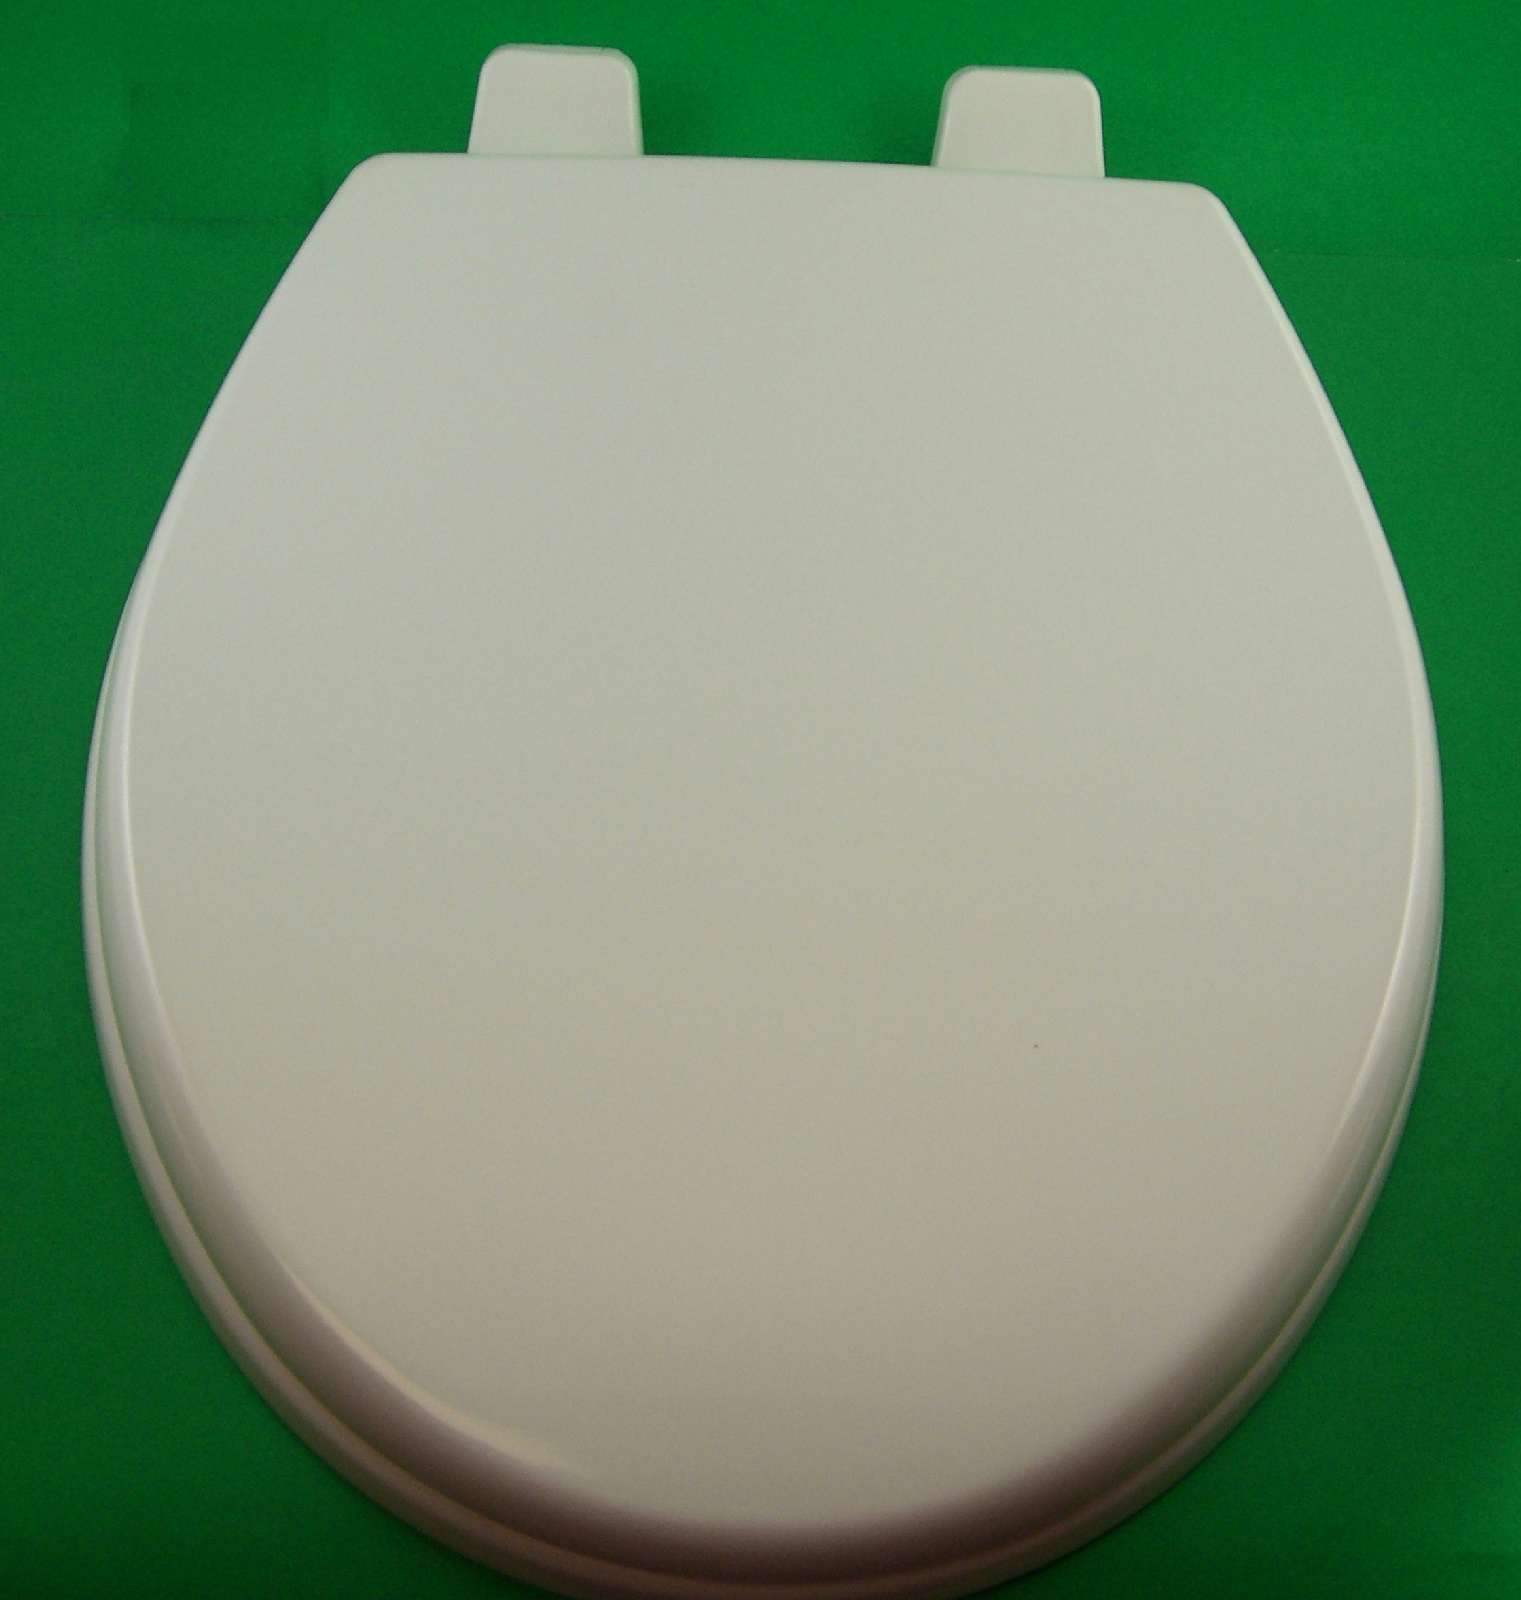 Sealand 343829 Rv Large Toilet Seat and Cover White 385343829 | eBay